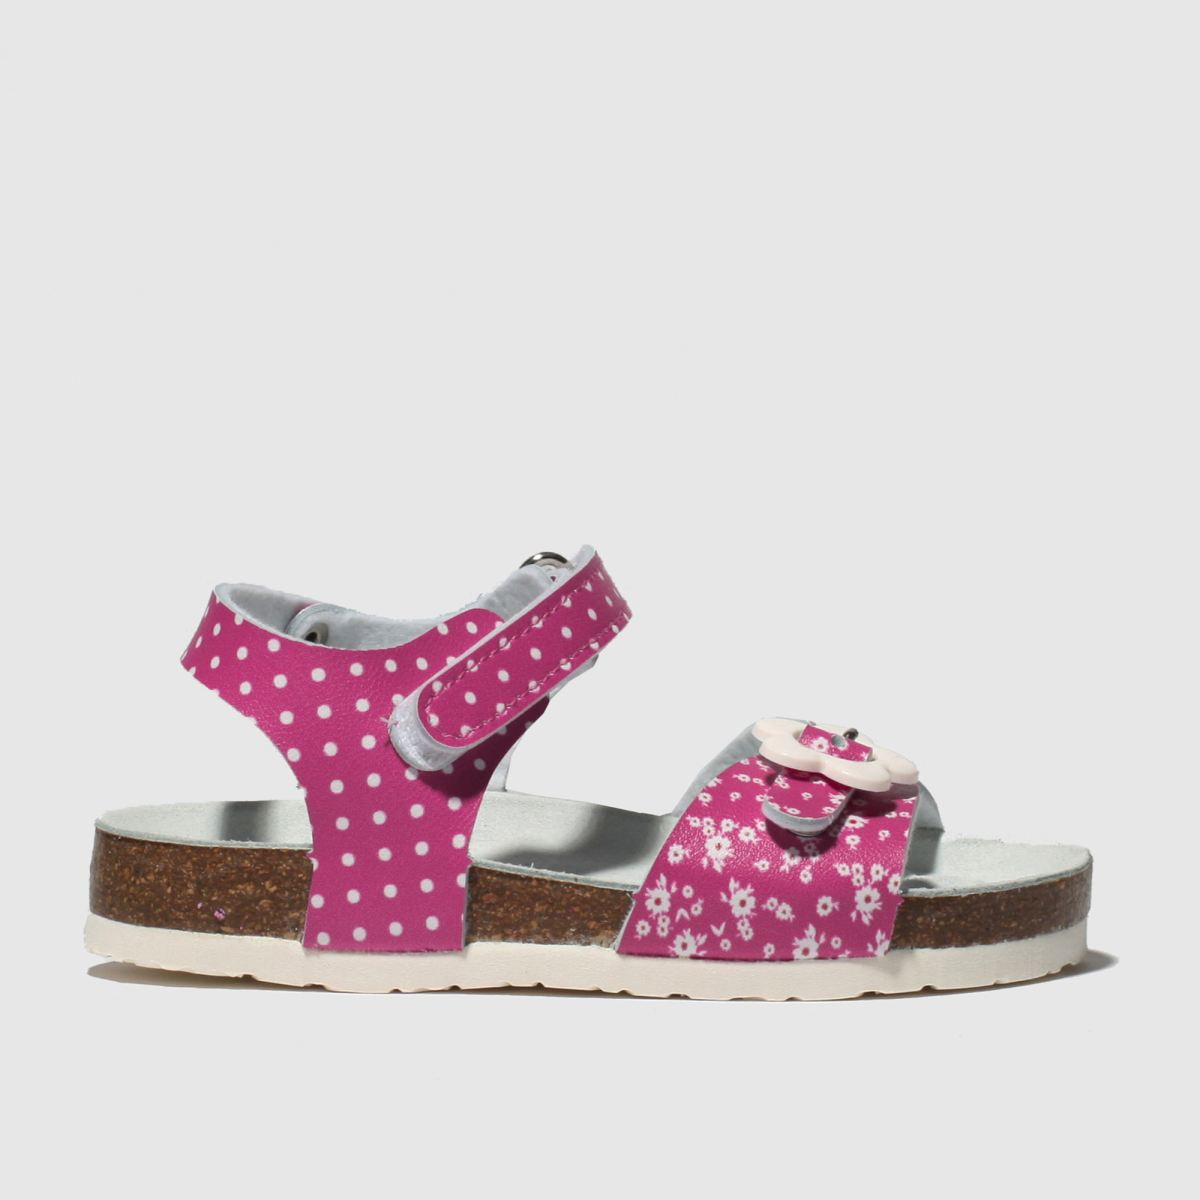 Lelli Kelly Pink Sonia Sandals Toddler